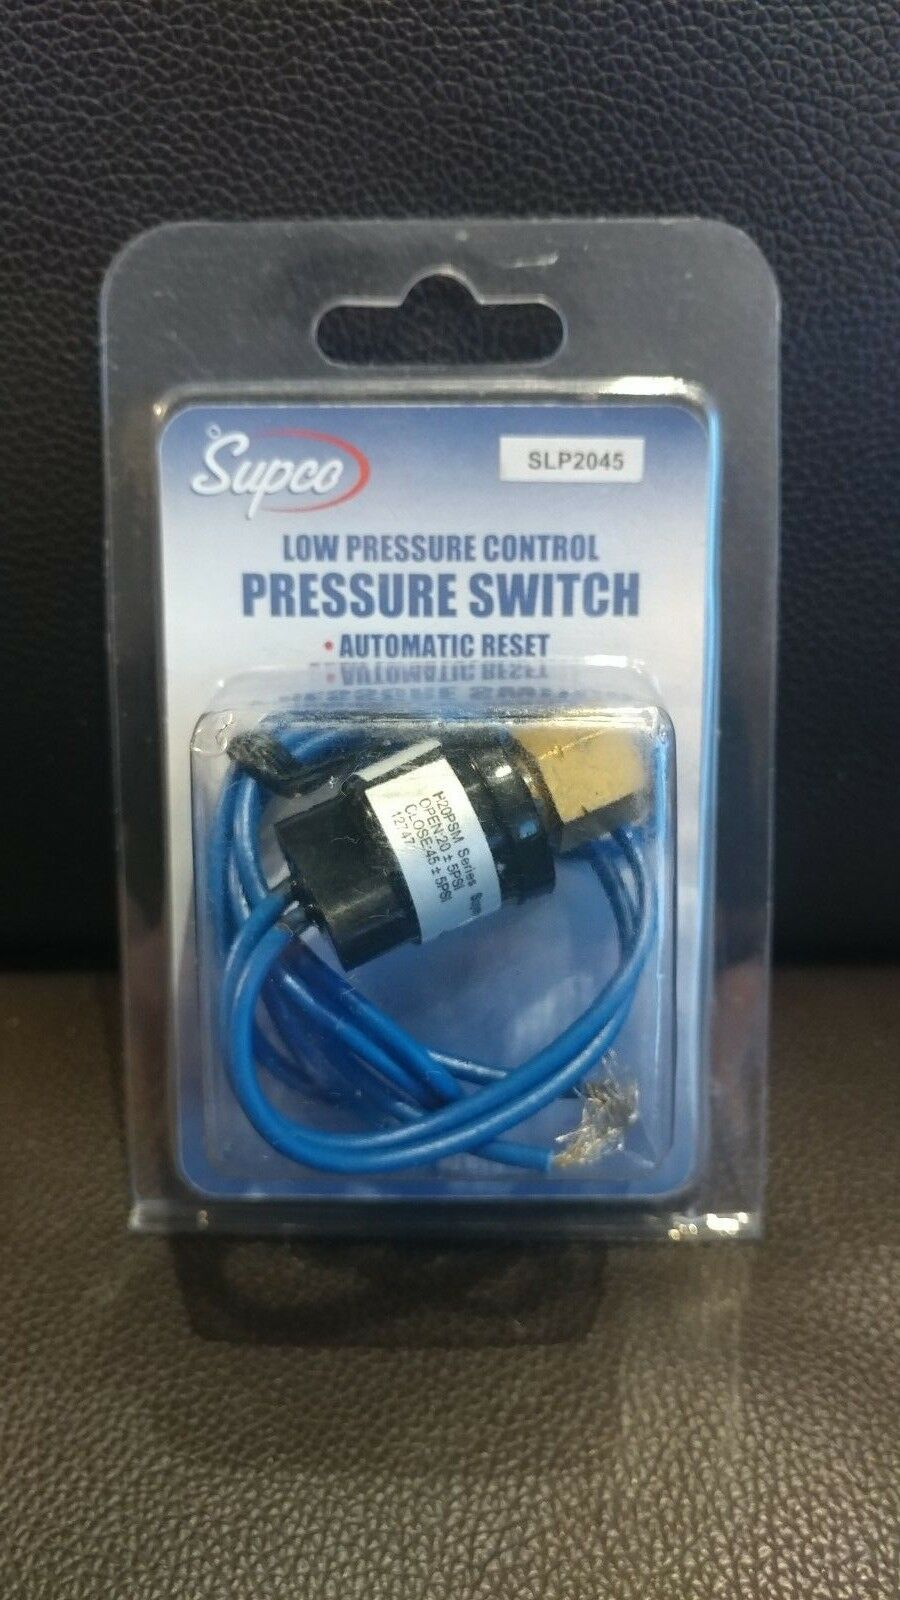 20 Close 45 Low Pressure Control Switch w// Automatic Reset Supco SLP2045 Open